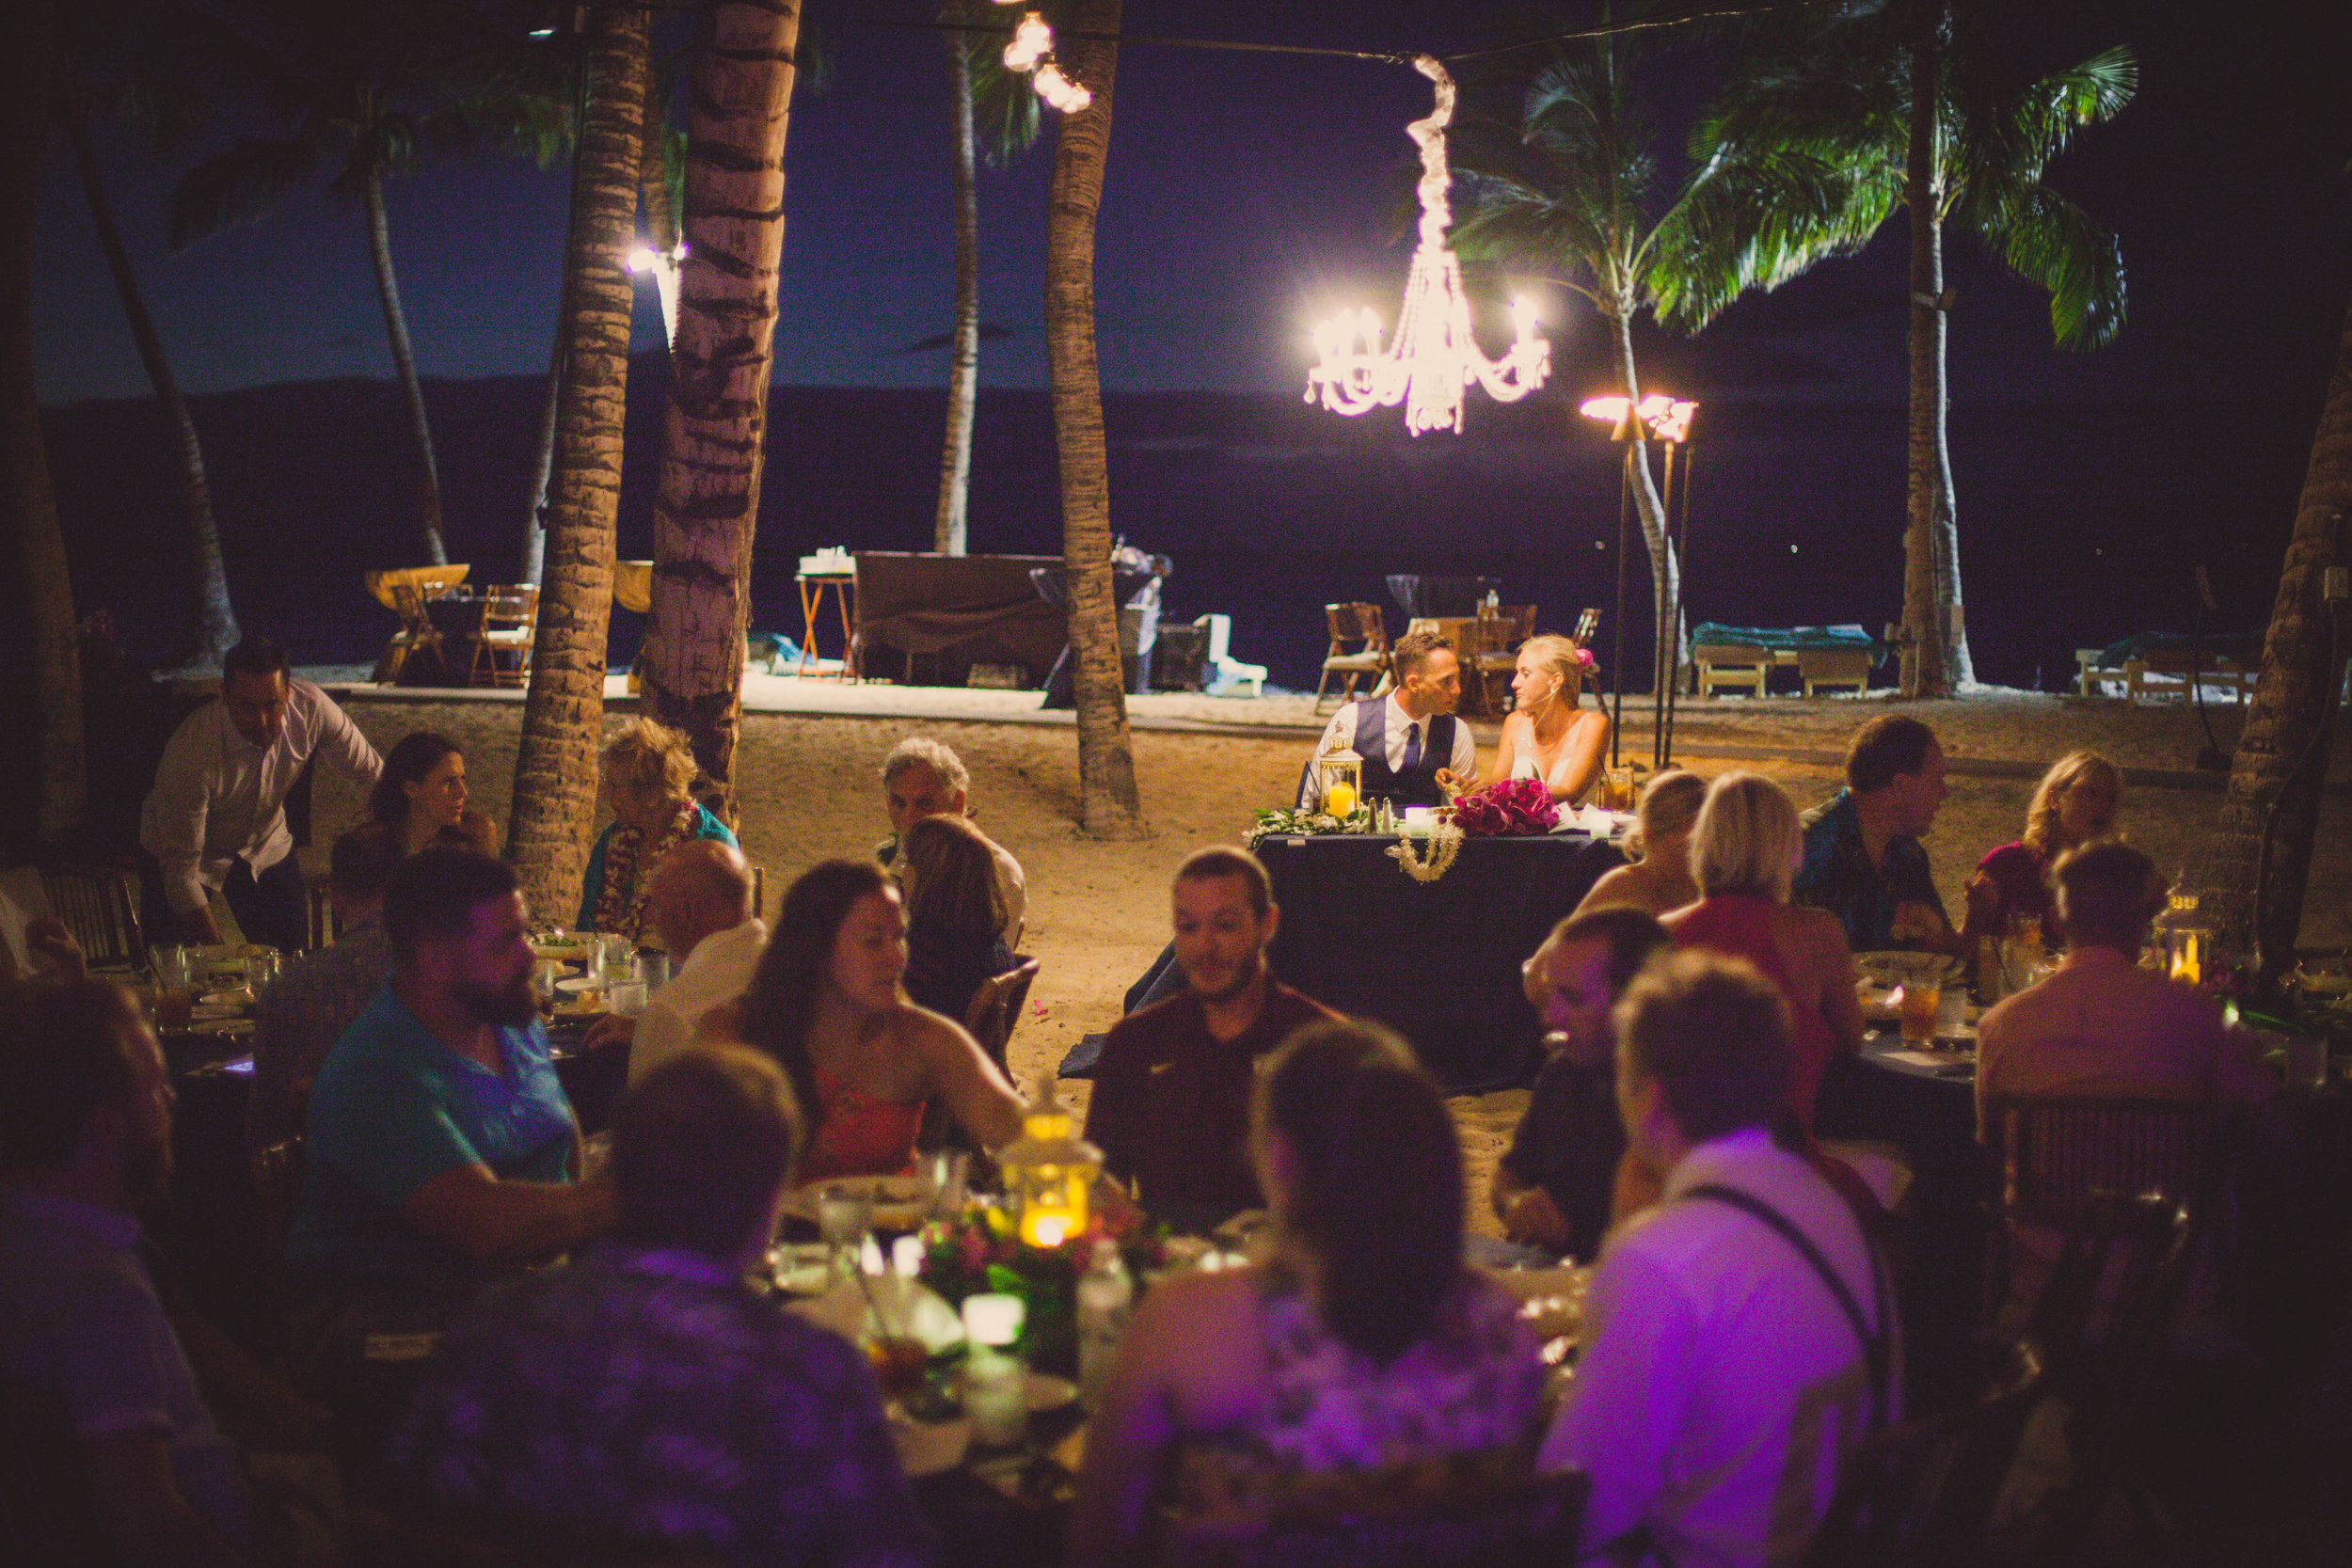 big island hawaii fairmont orchid beach wedding © kelilina photography 20170812193541-1.jpg